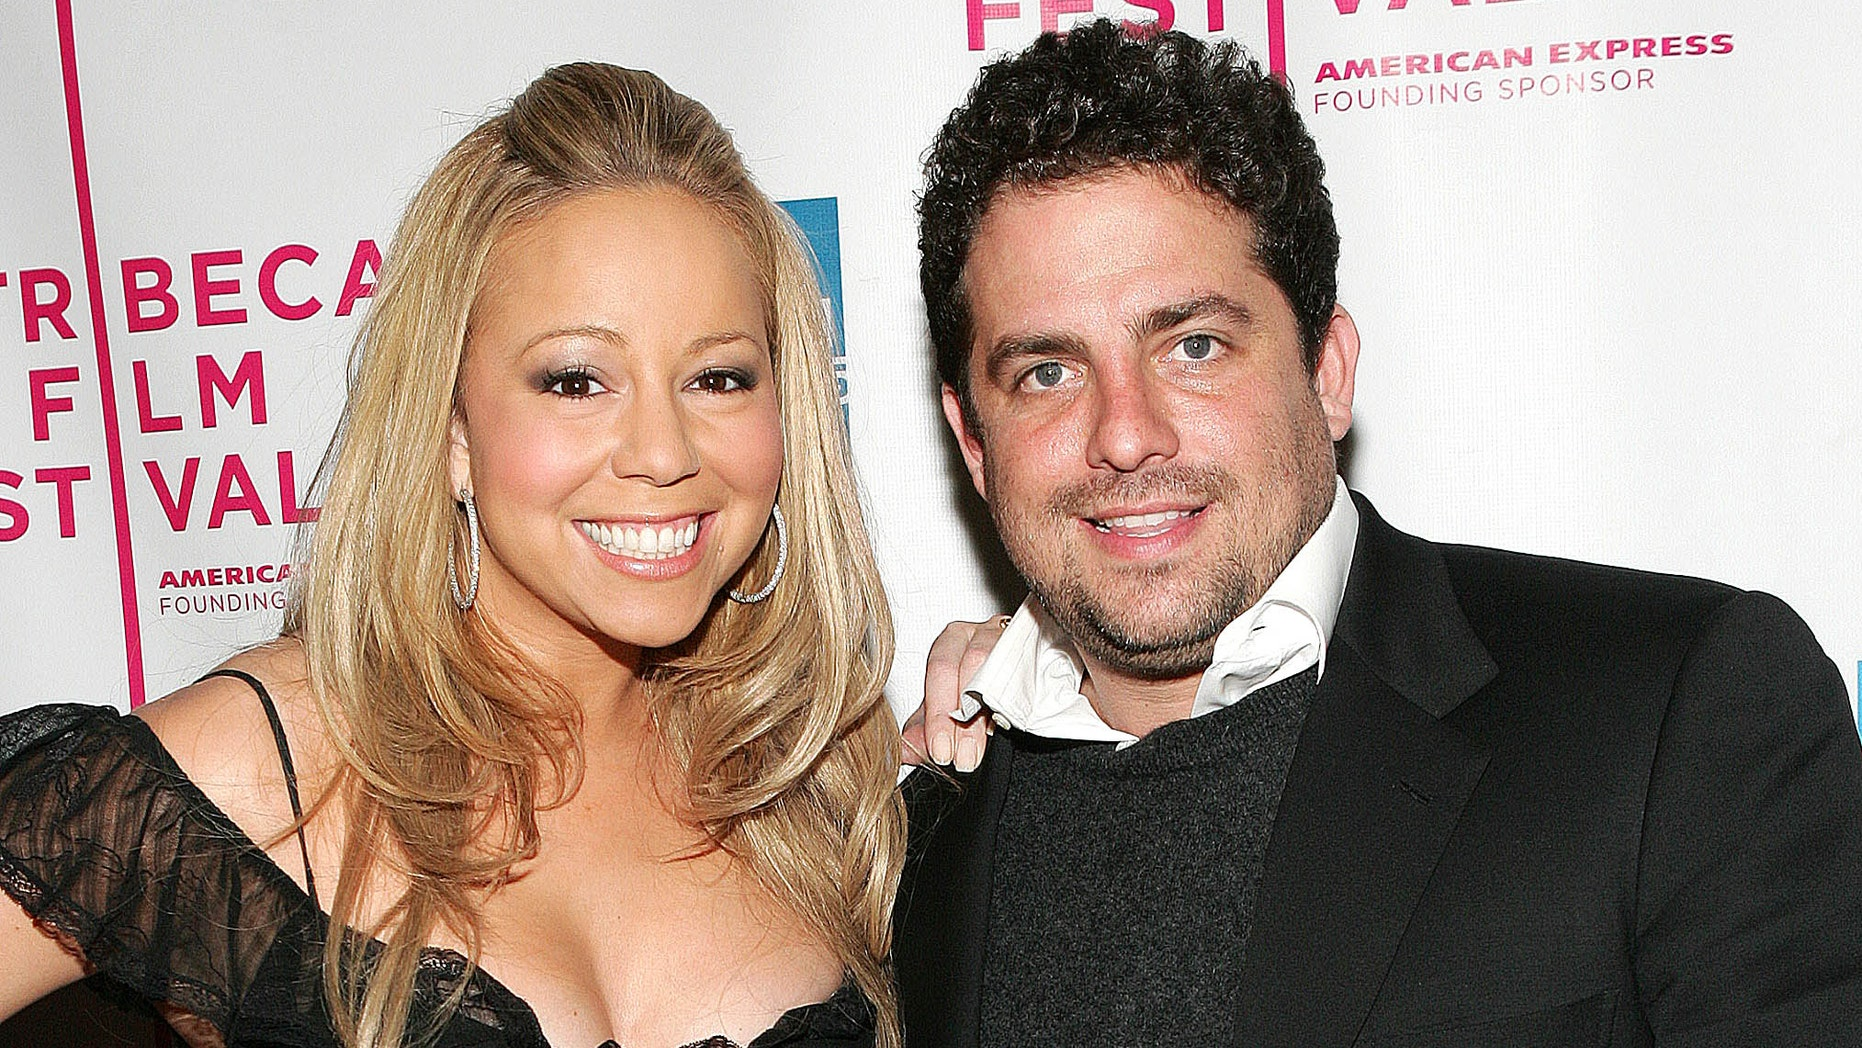 """NEW YORK - APRIL 19:  Singer Mariah Carey and Director Brett Ratner attend """"The Interpreter"""" premiere at the Ziegfeld Theatre April 19, 2005 in New York City.  (Photo by Evan Agostini/Getty Images)"""